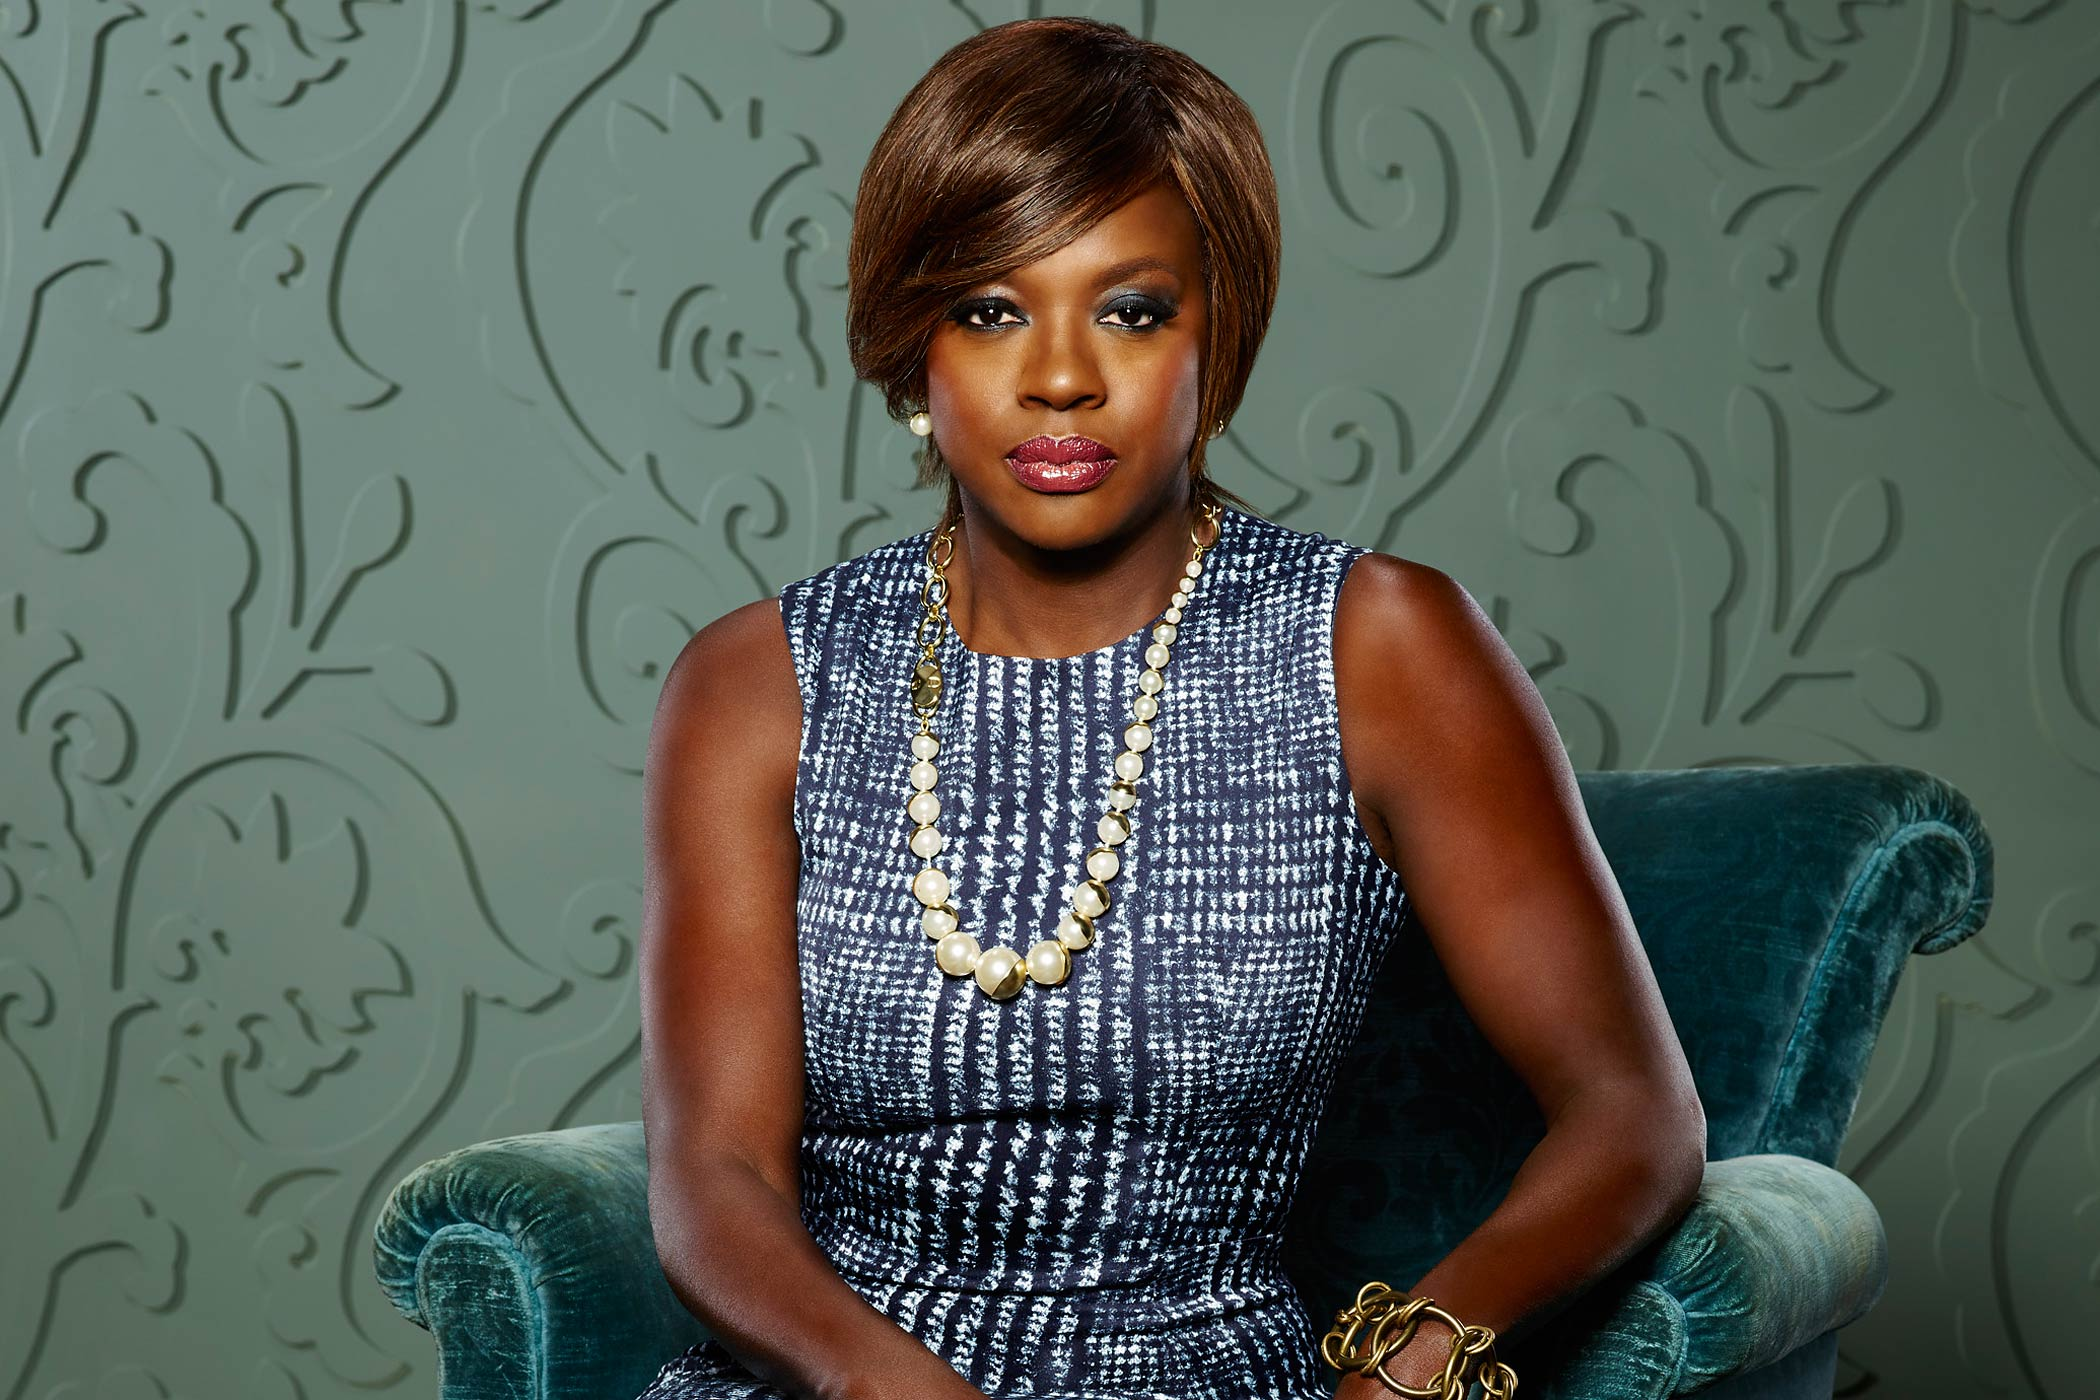 Viola Davis stars as Professor Annalise Keating in How to Get Away With Murder